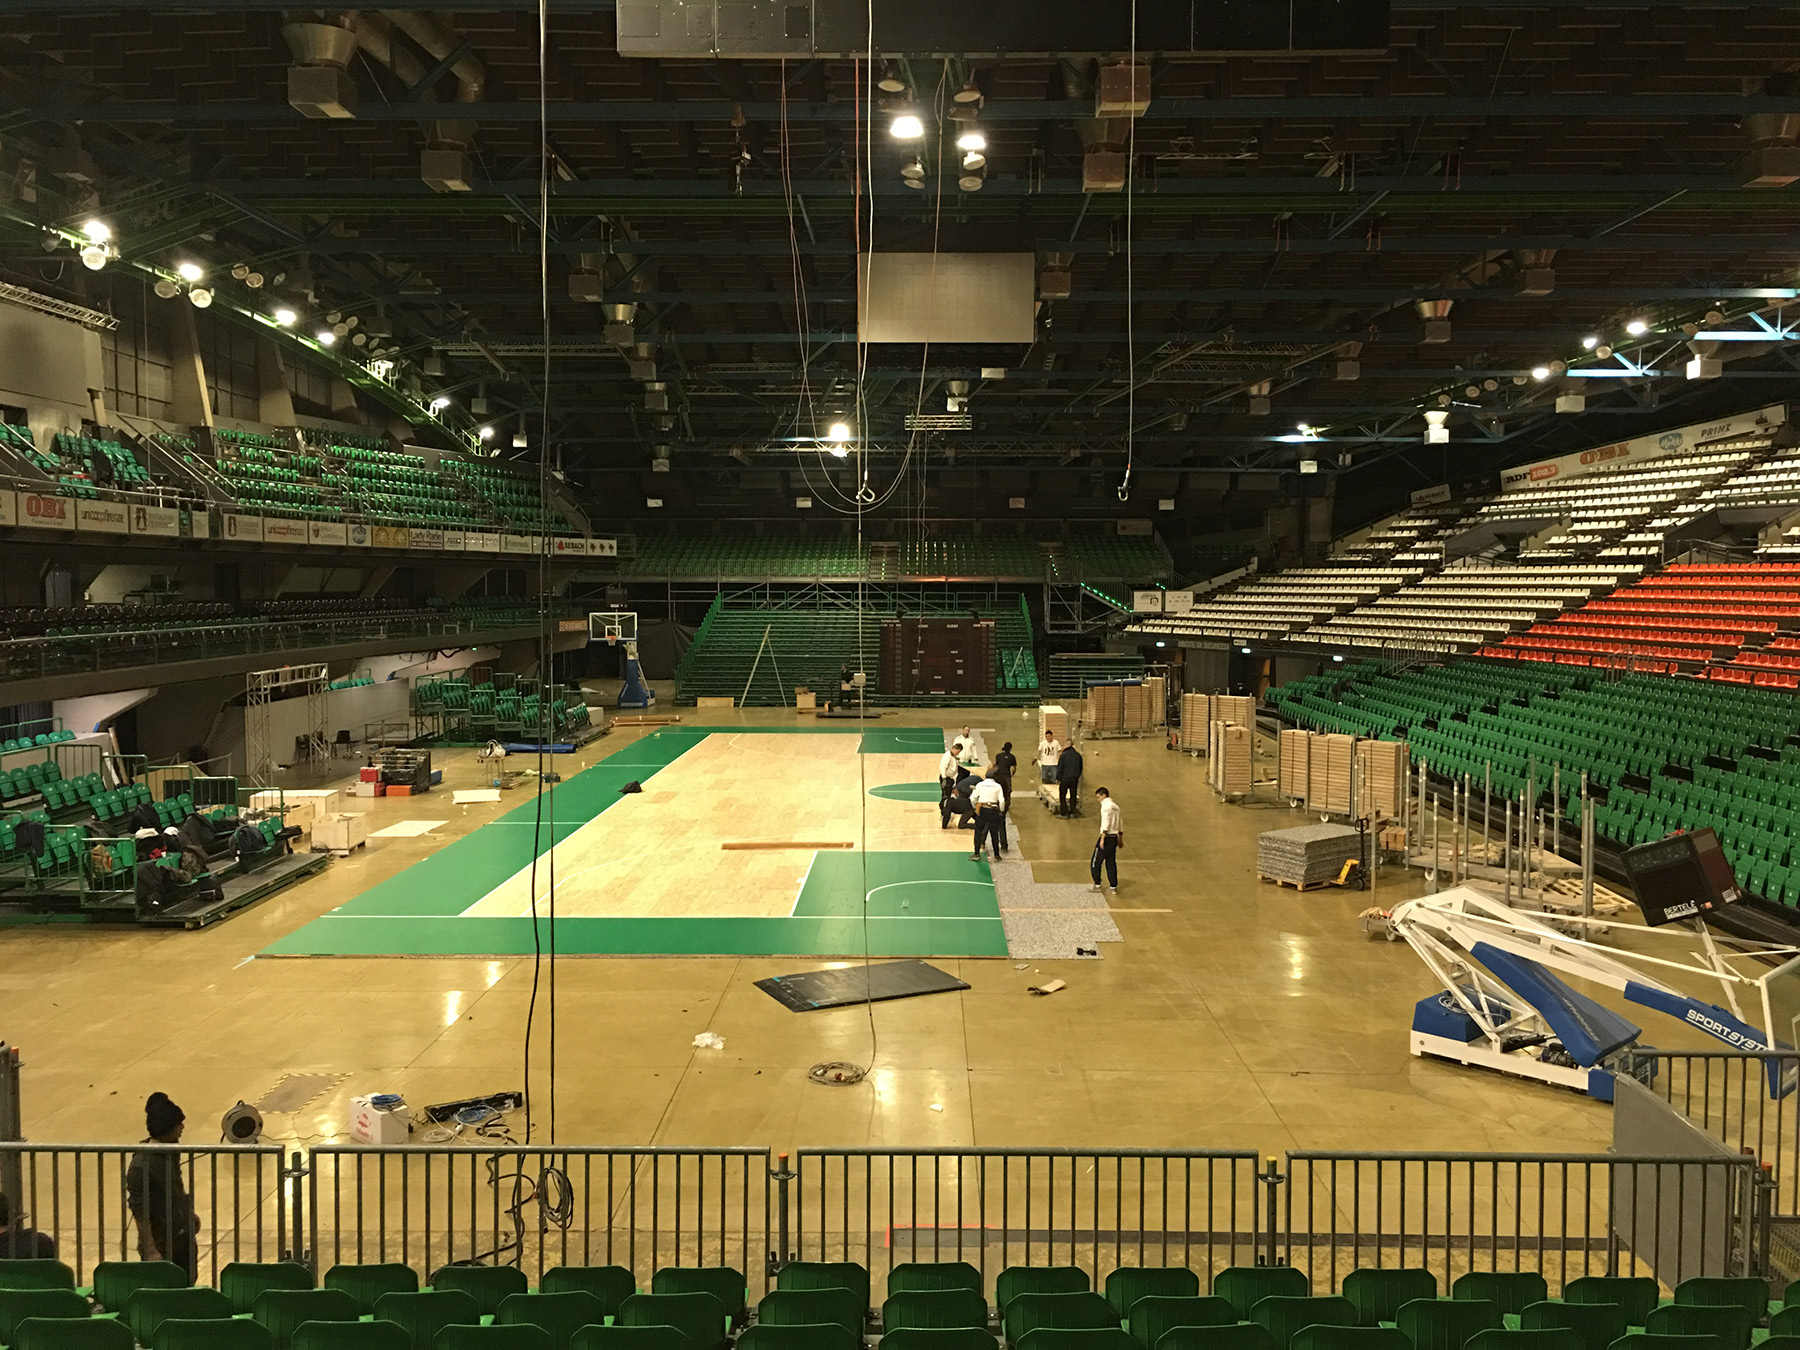 The new portable parquet Dalla Riva will frame the champions of Italian basketball